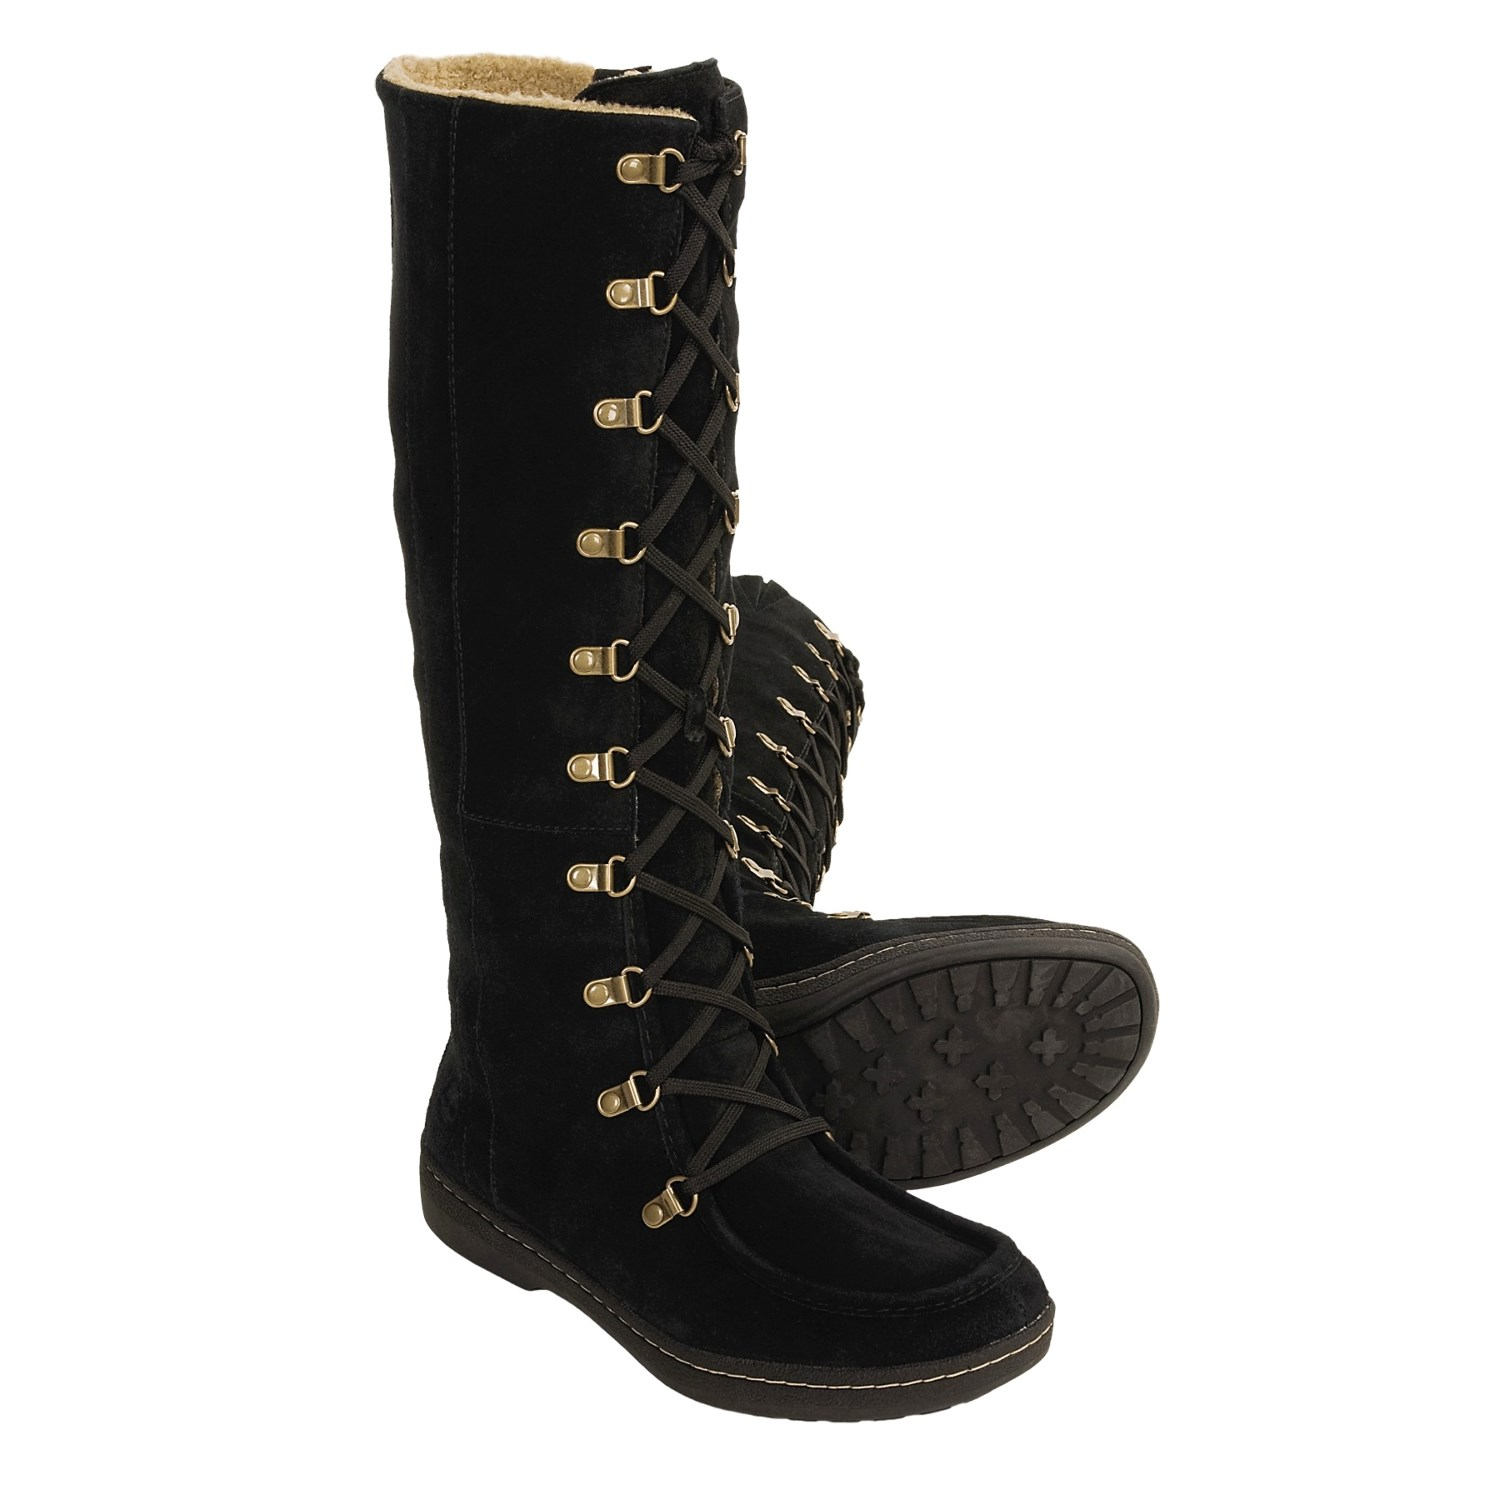 Timberland Winnicut Tall Winter Boots (For Women) 2780P